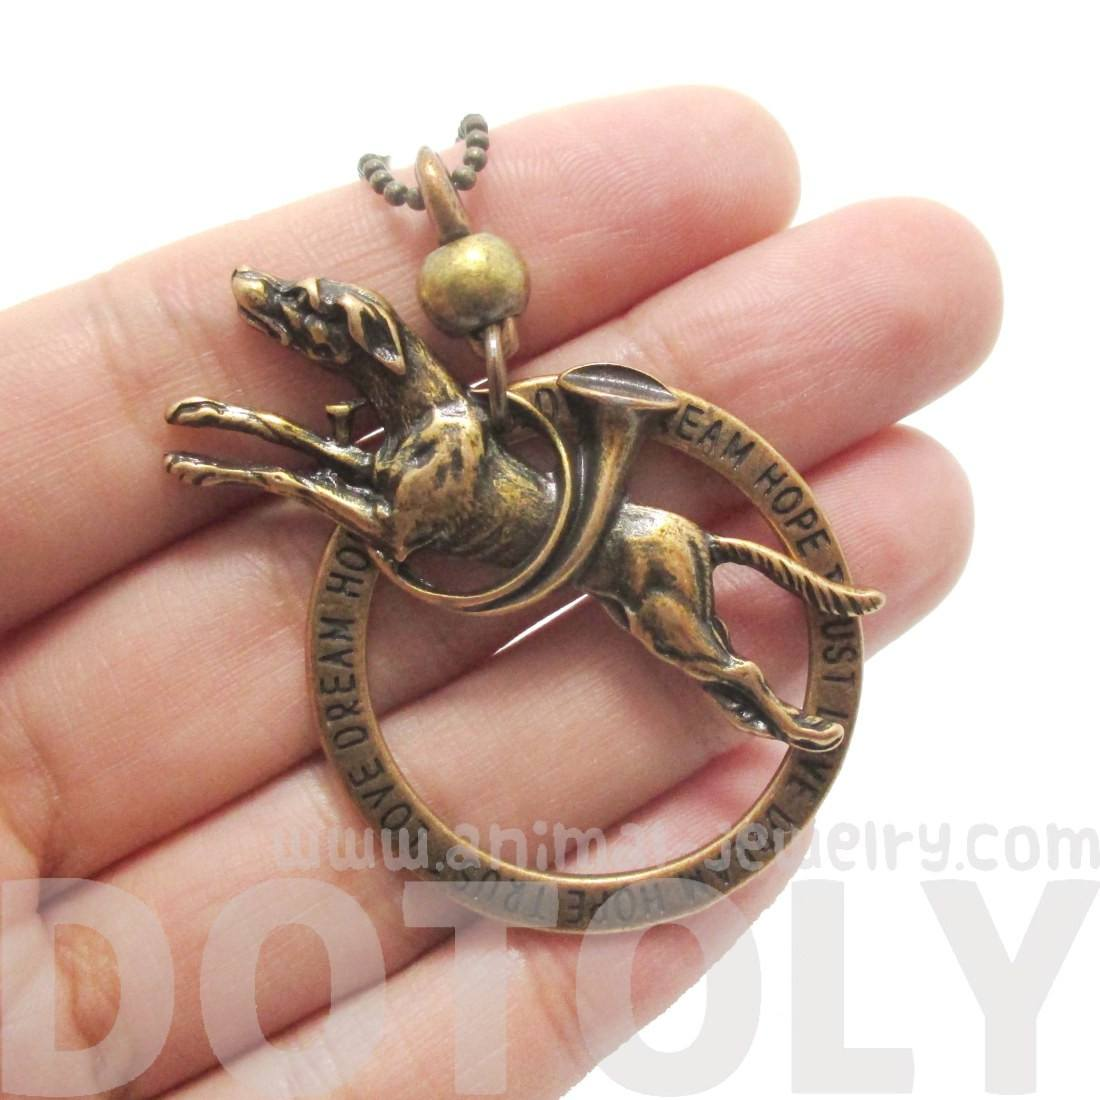 Greyhound Dog Jumping Shaped Pendant Necklace in Brass